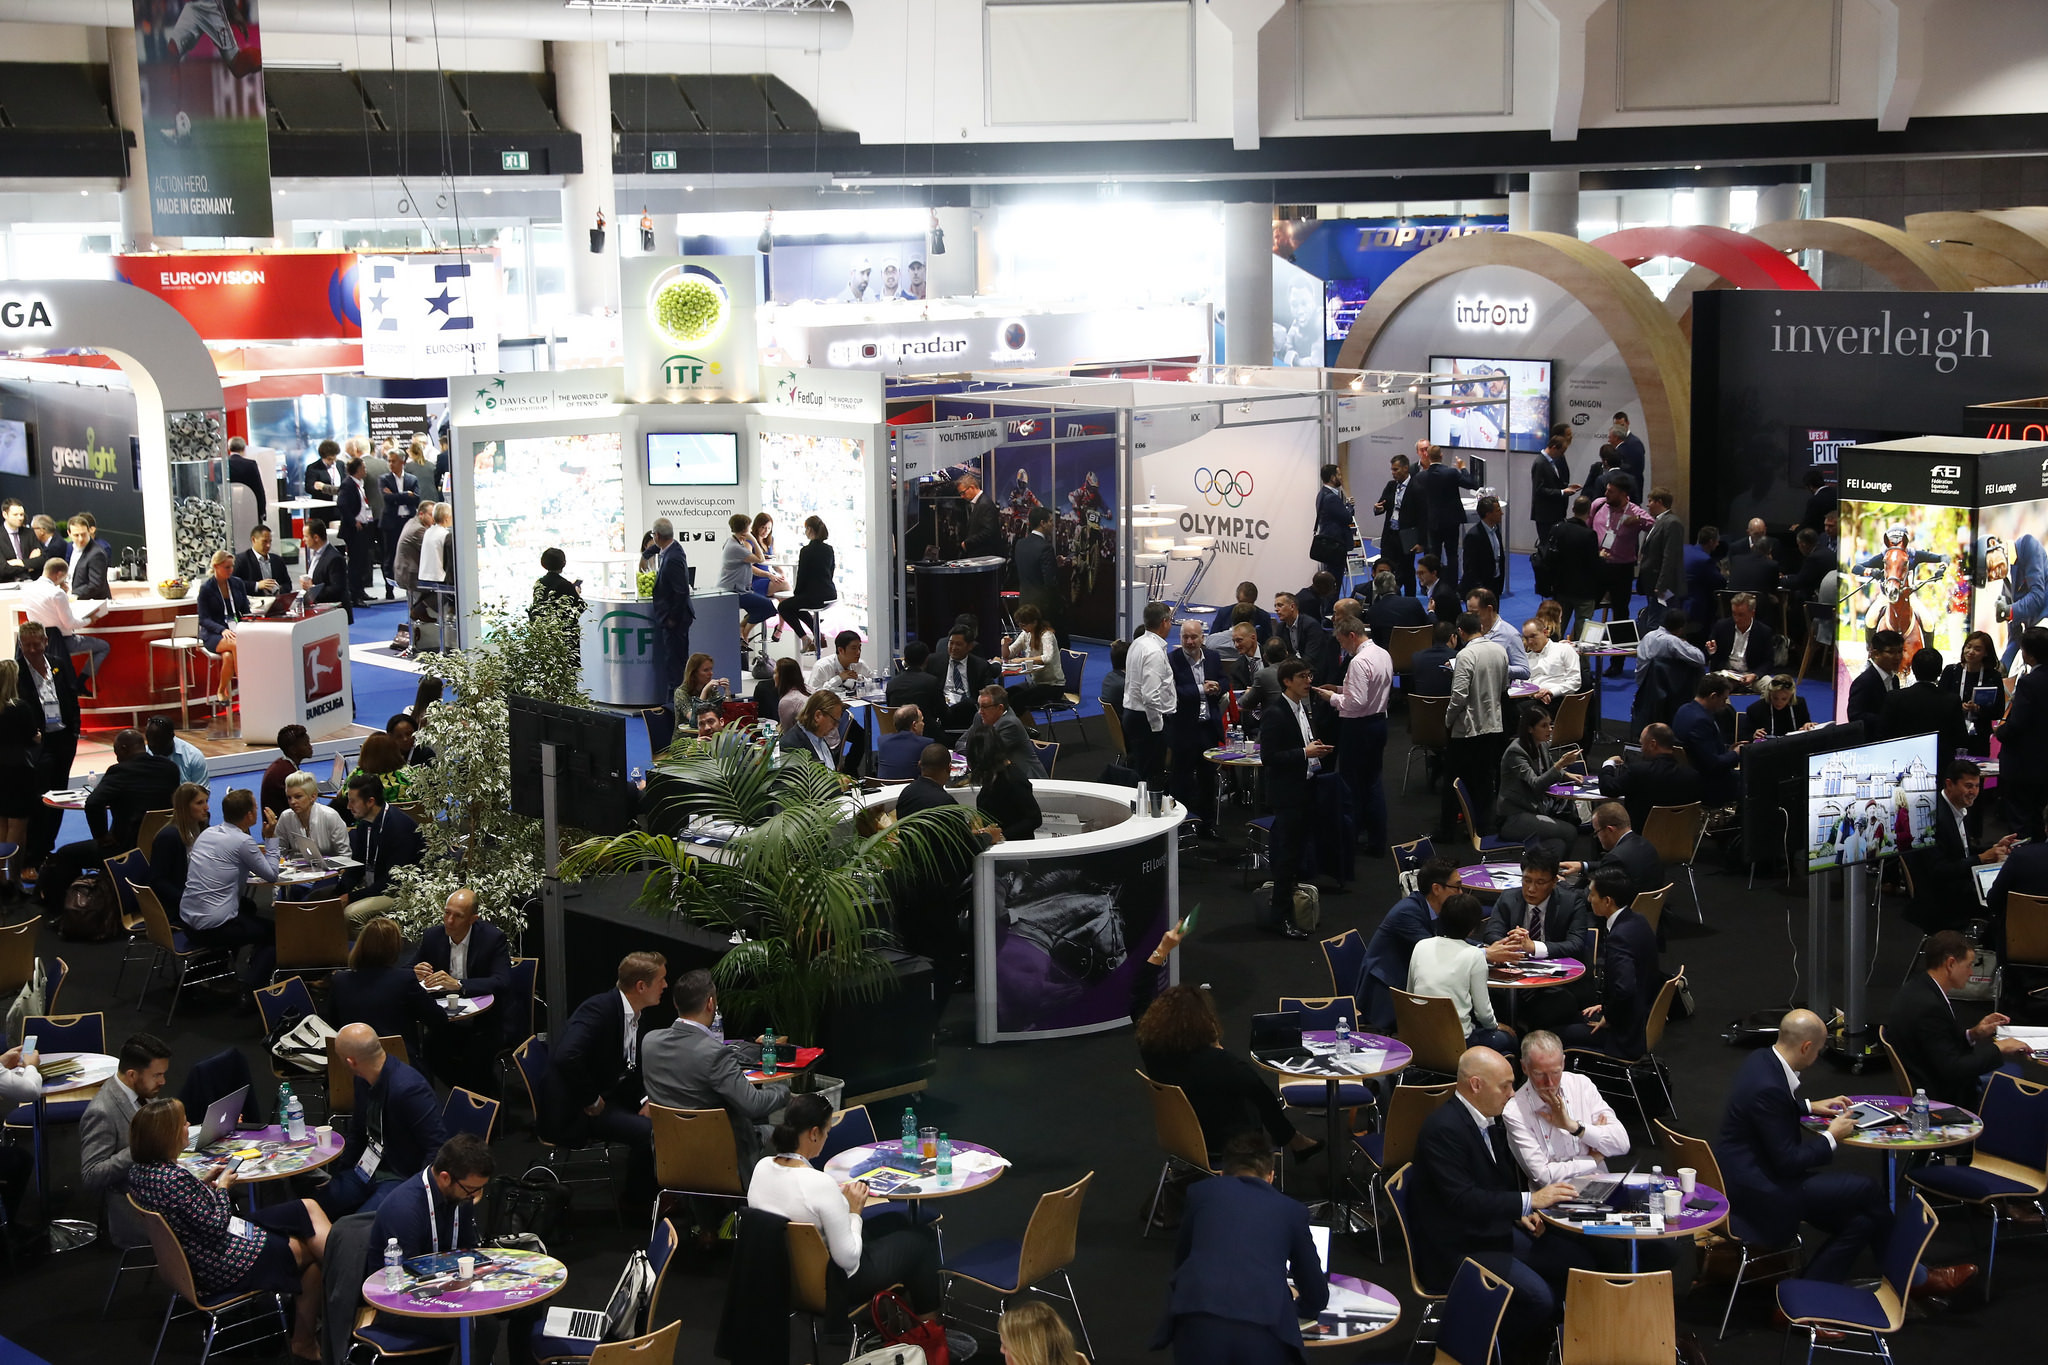 The SPORTELMonaco convention will be attended by a number of executives from companies in the sports media and marketing industry as they look at future trends in broadcasting and social media ©SPORTEL